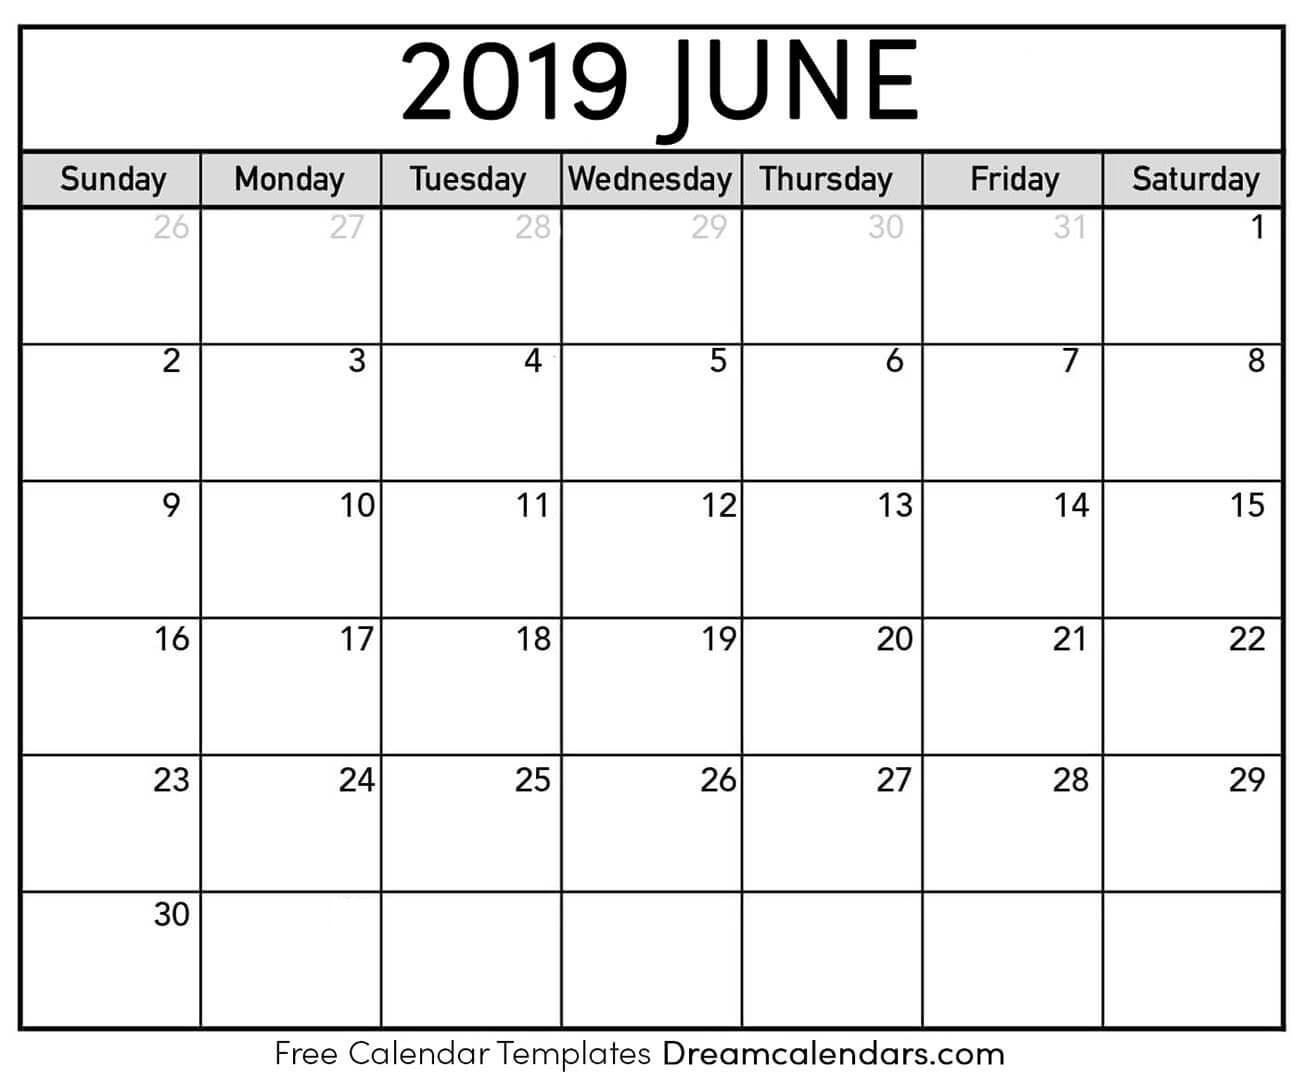 photograph about Free Printable June Calendar titled June 2019 Calendar